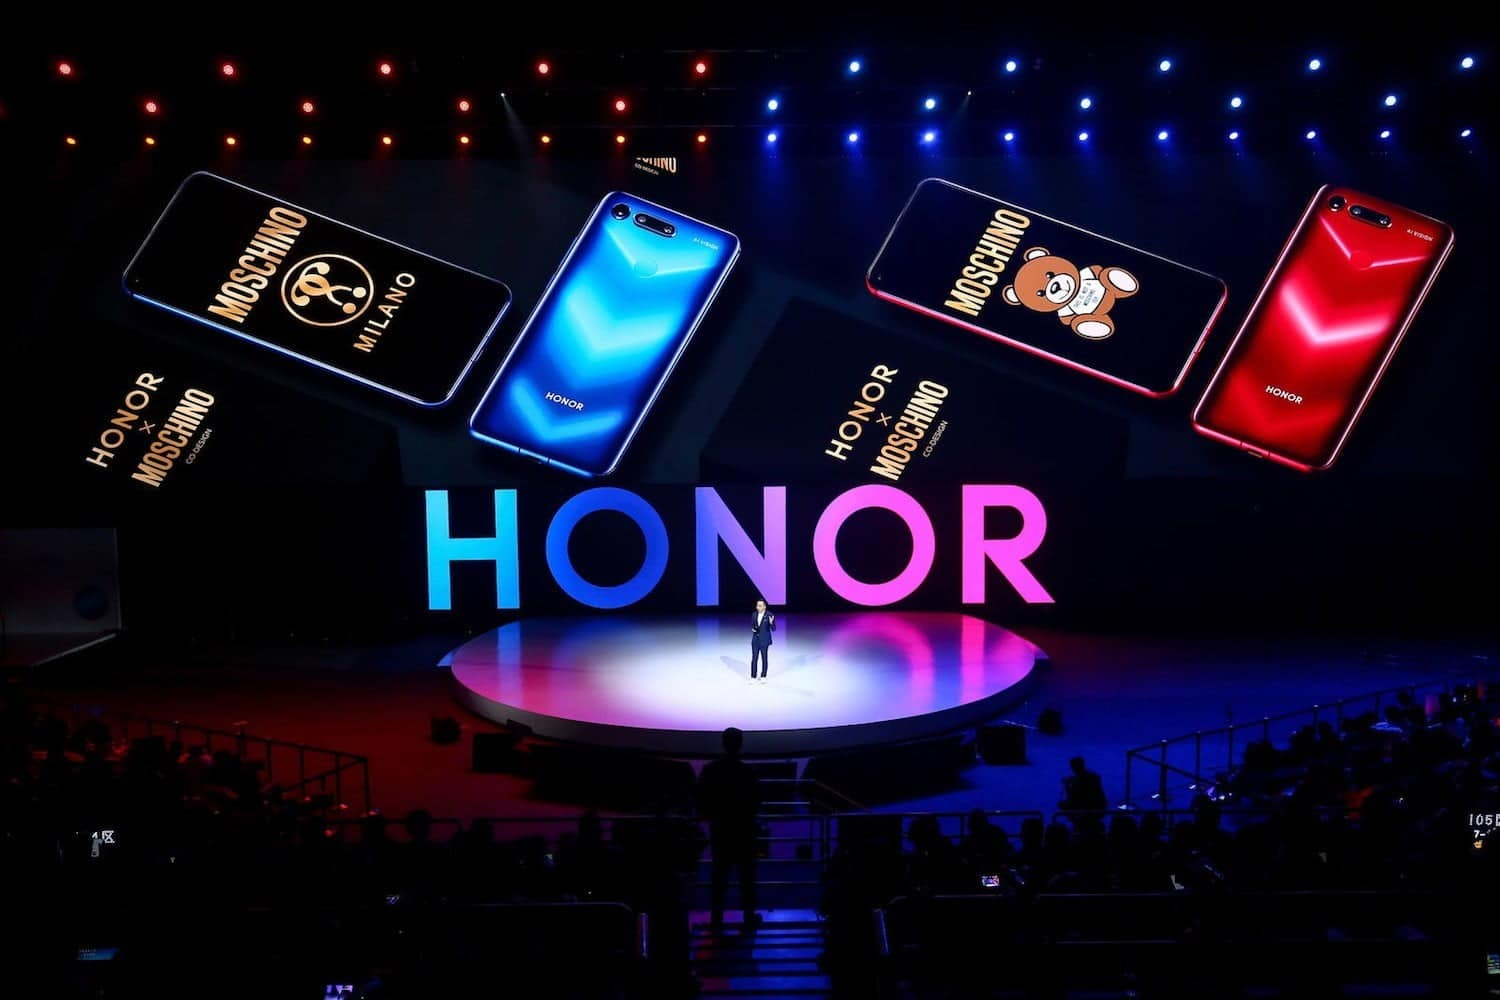 Honor TV to be announced soon? Honor 9X, Honor Magicbook spotted